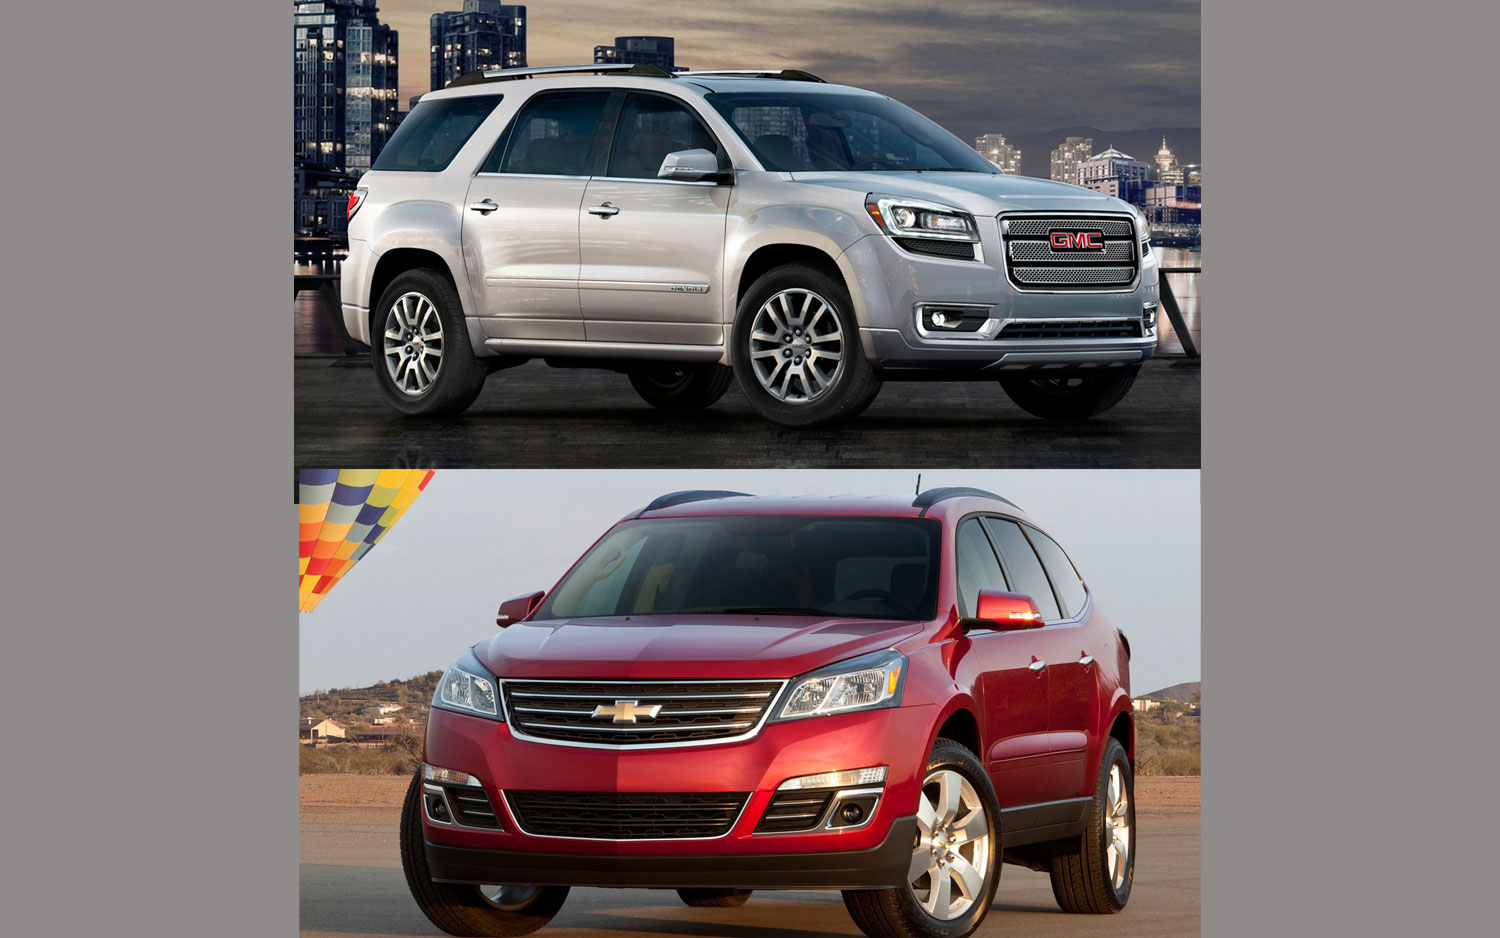 Traverse Vs Acadia >> Wot Would You Pick 2013 Chevy Traverse Or 2013 Gmc Acadia Motor